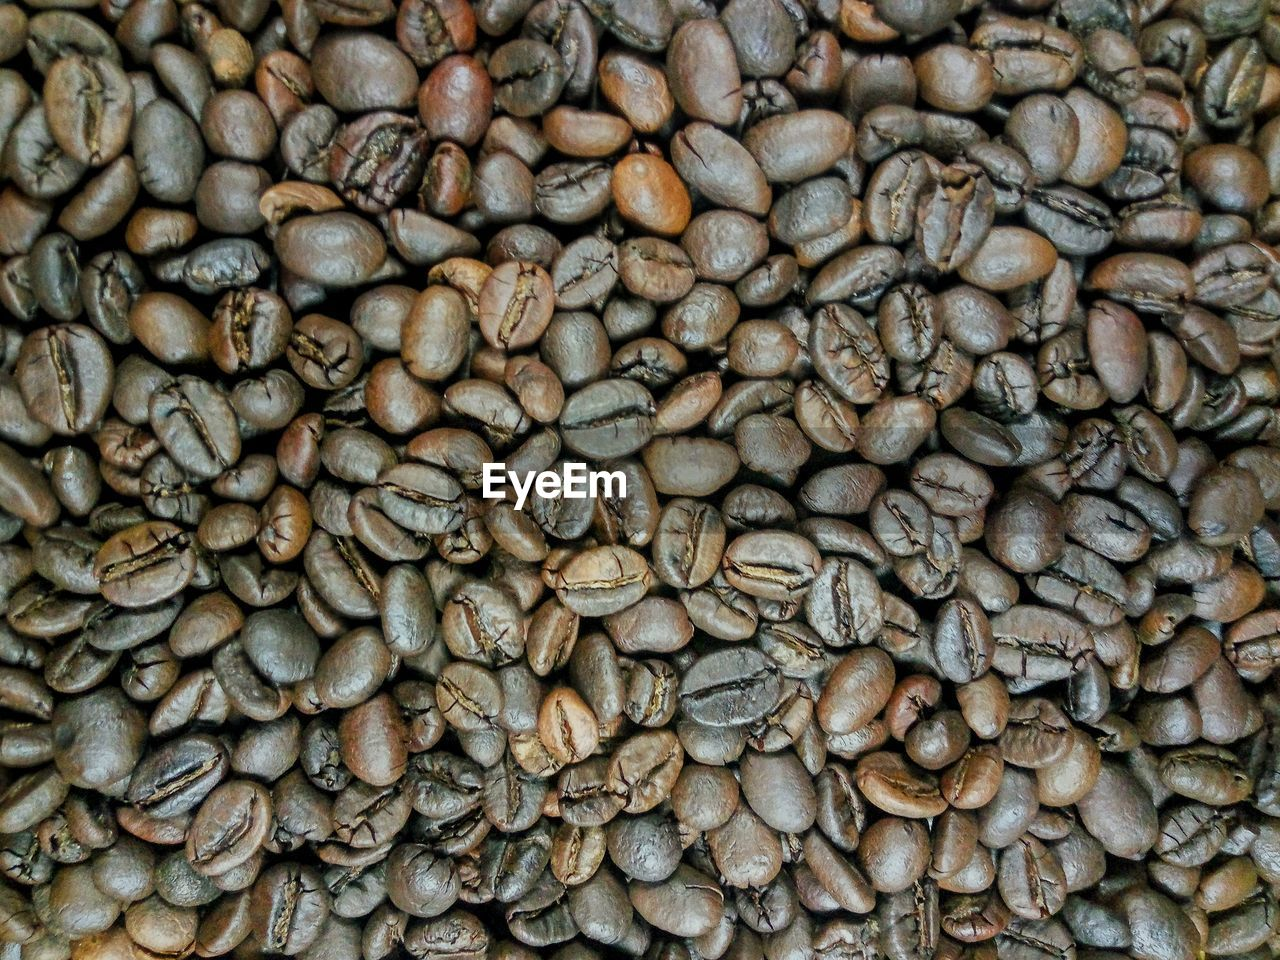 full frame, food and drink, backgrounds, coffee, large group of objects, coffee - drink, food, freshness, no people, abundance, brown, coffee bean, still life, close-up, drink, roasted coffee bean, day, collection, indoors, raw coffee bean, caffeine